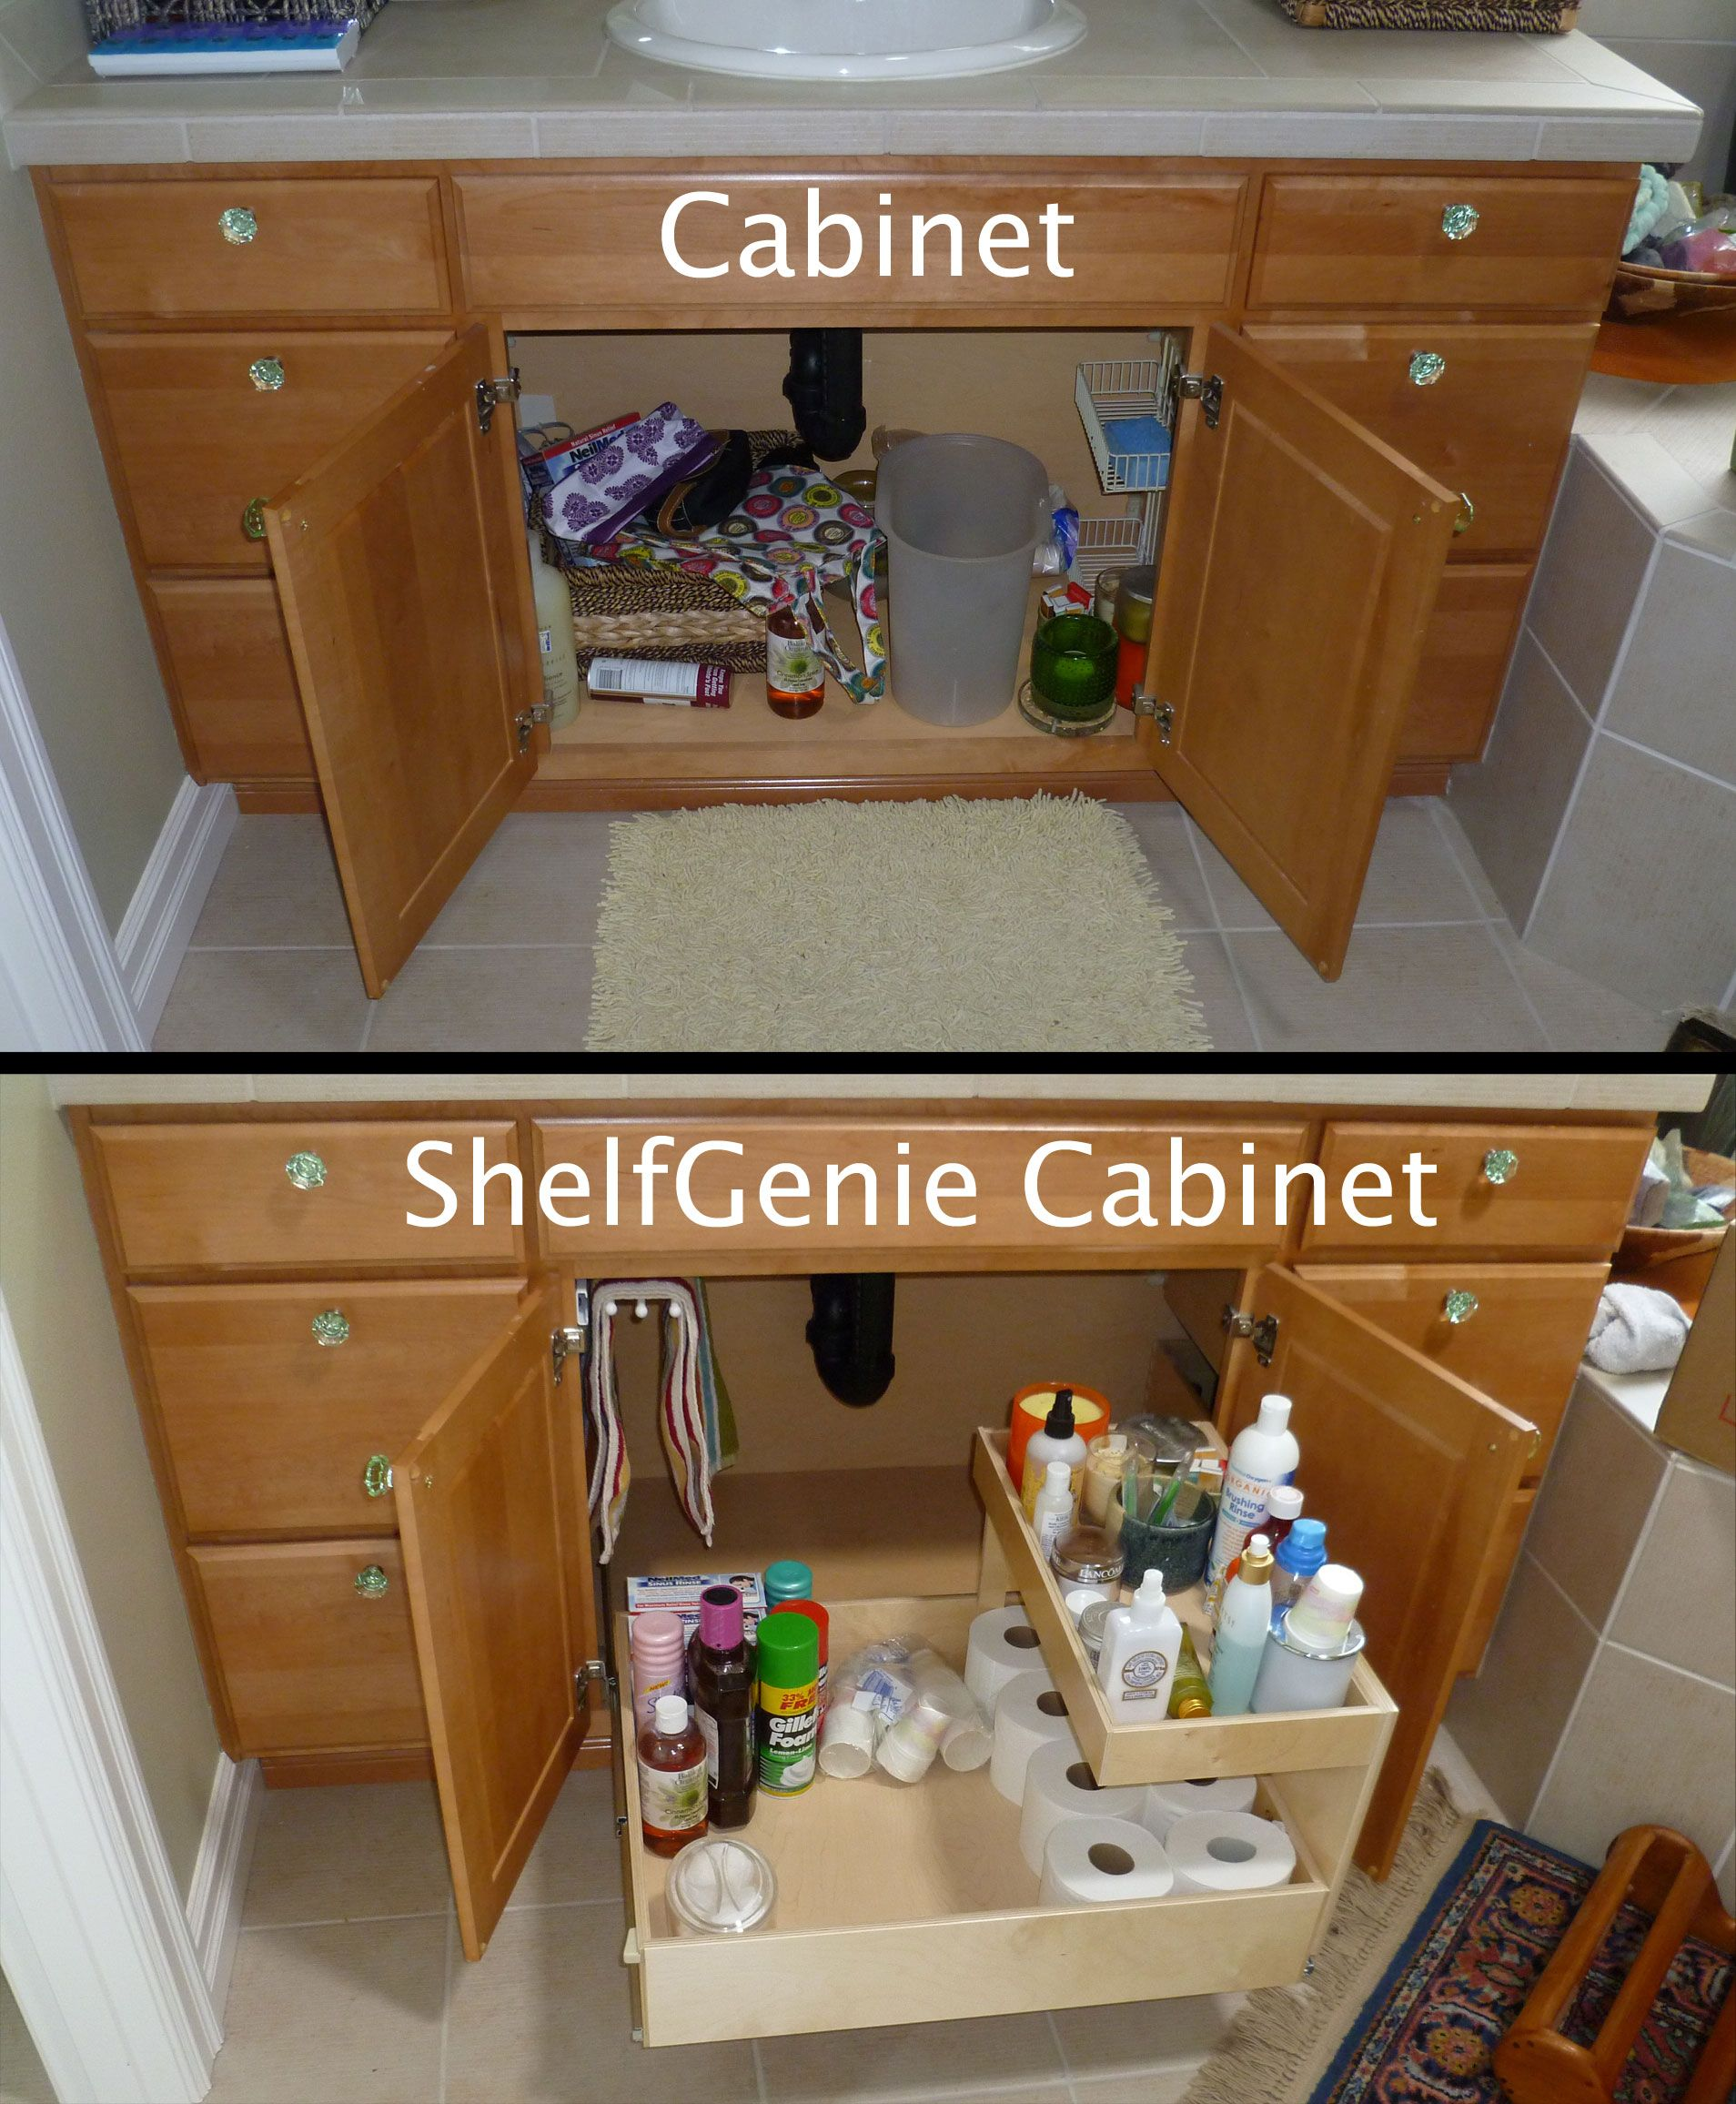 The recipe for turning this cabinet into a ShelfGenie cabinet add